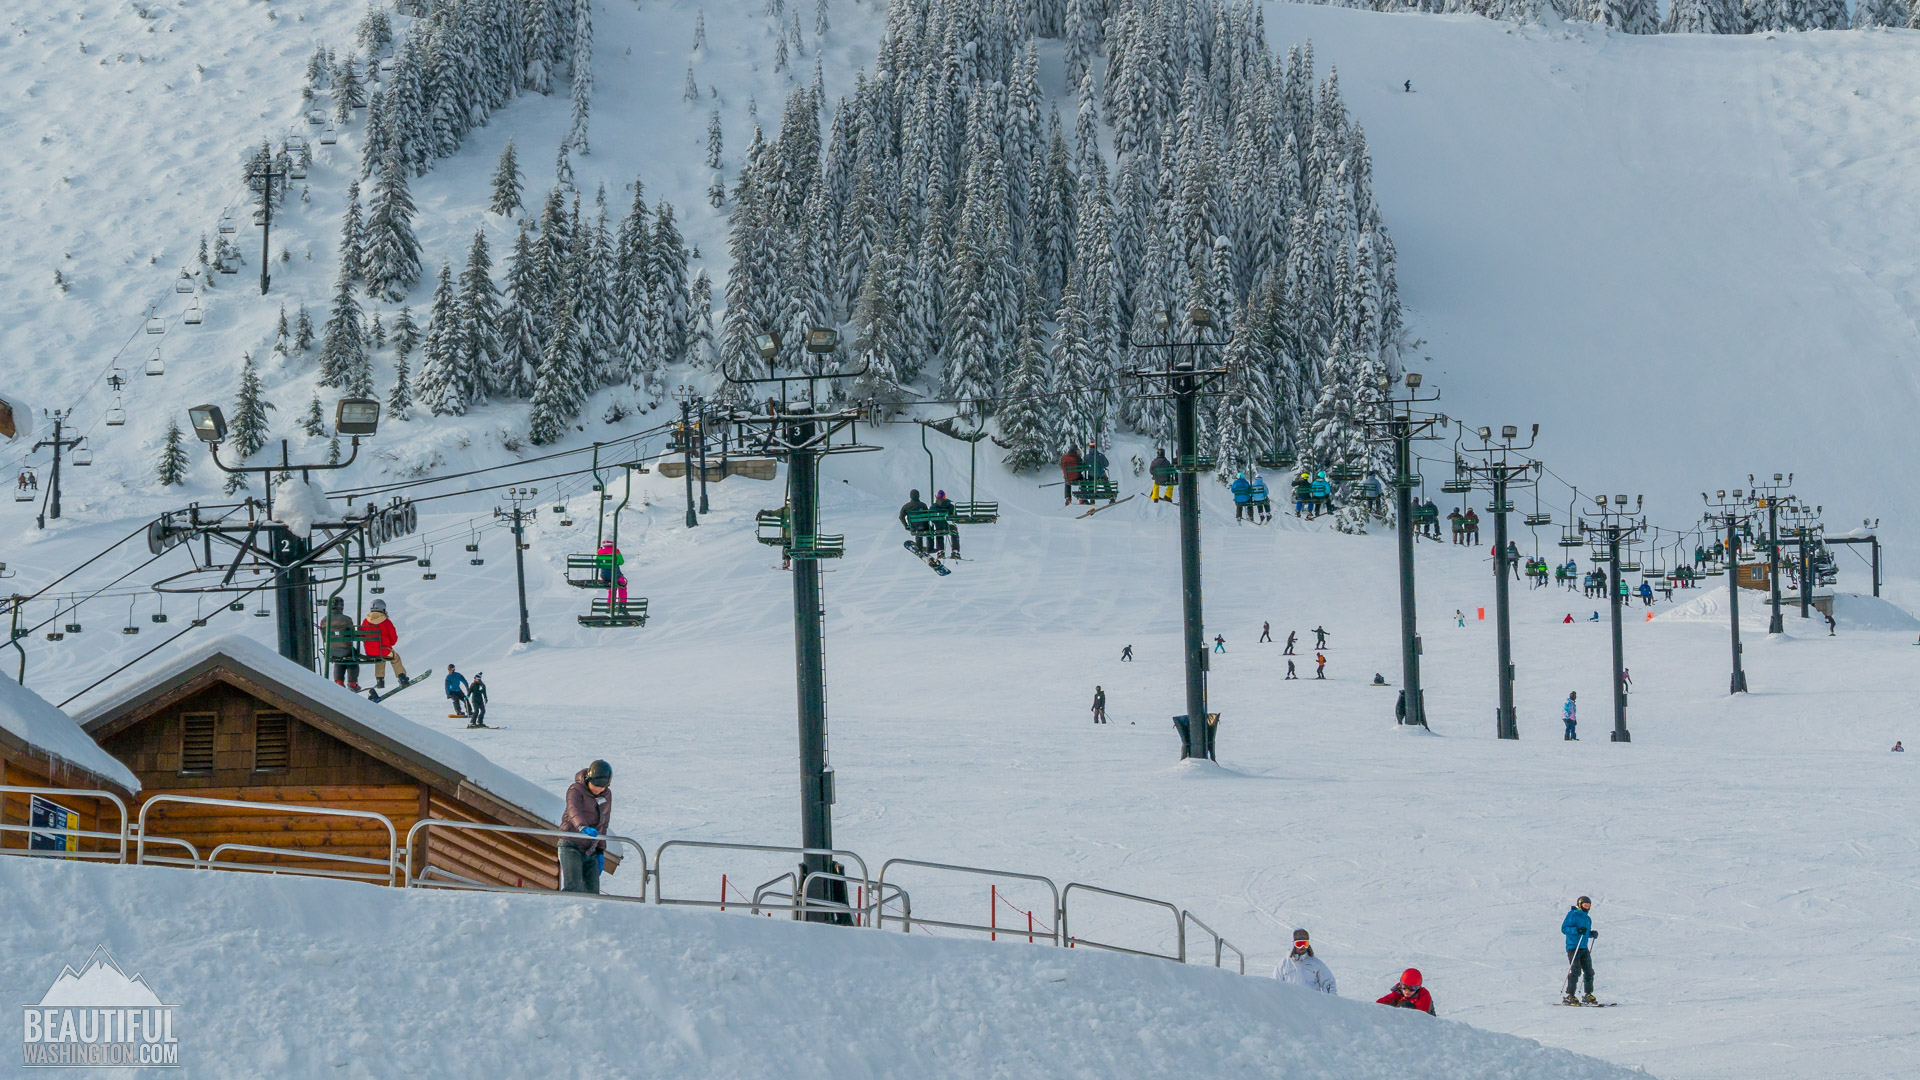 the summit – an incredible ski resort at snoqualmie